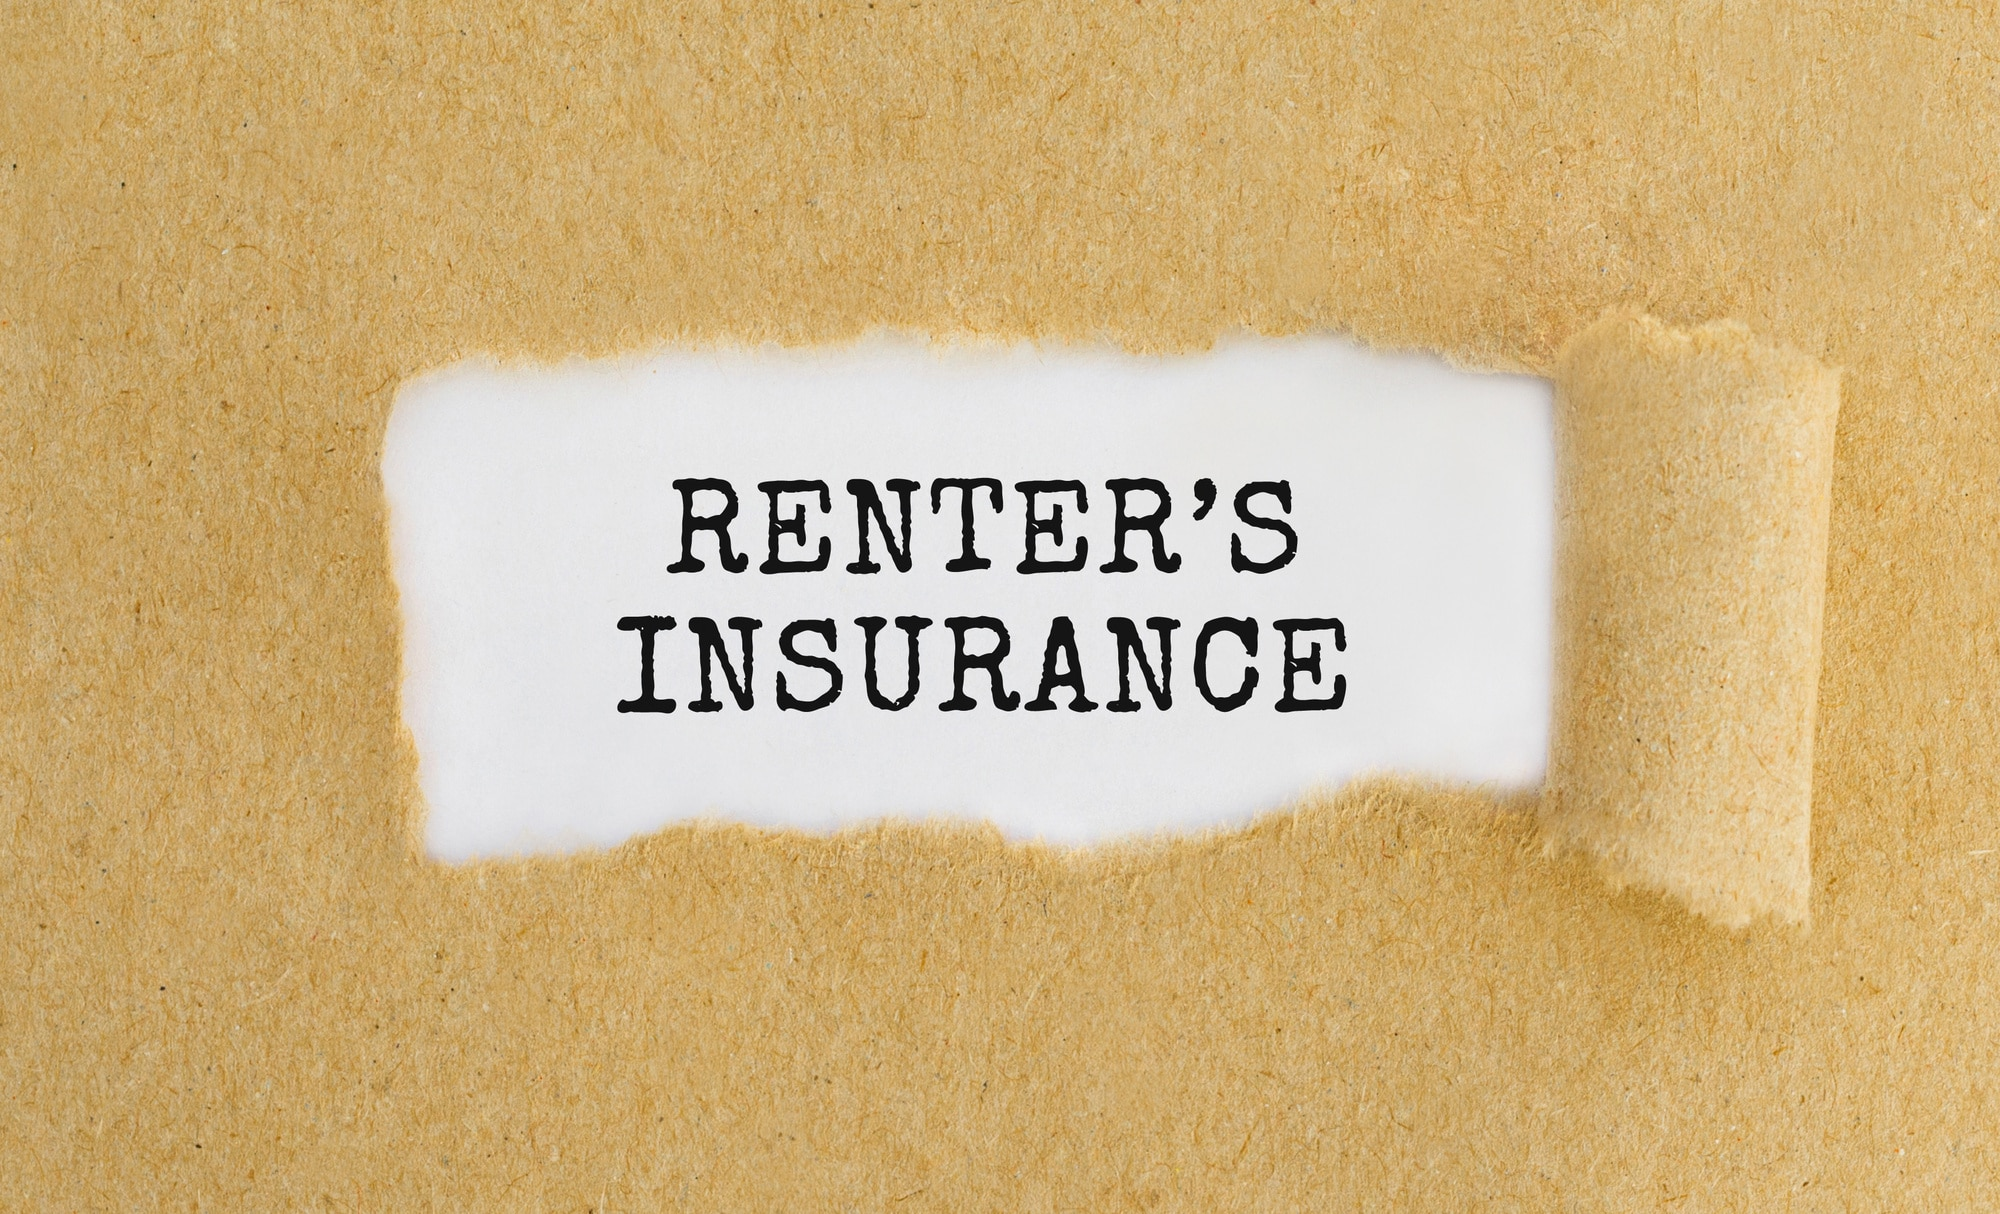 Top 5 Benefits Of Renters Insurance Additional interest renters insurance